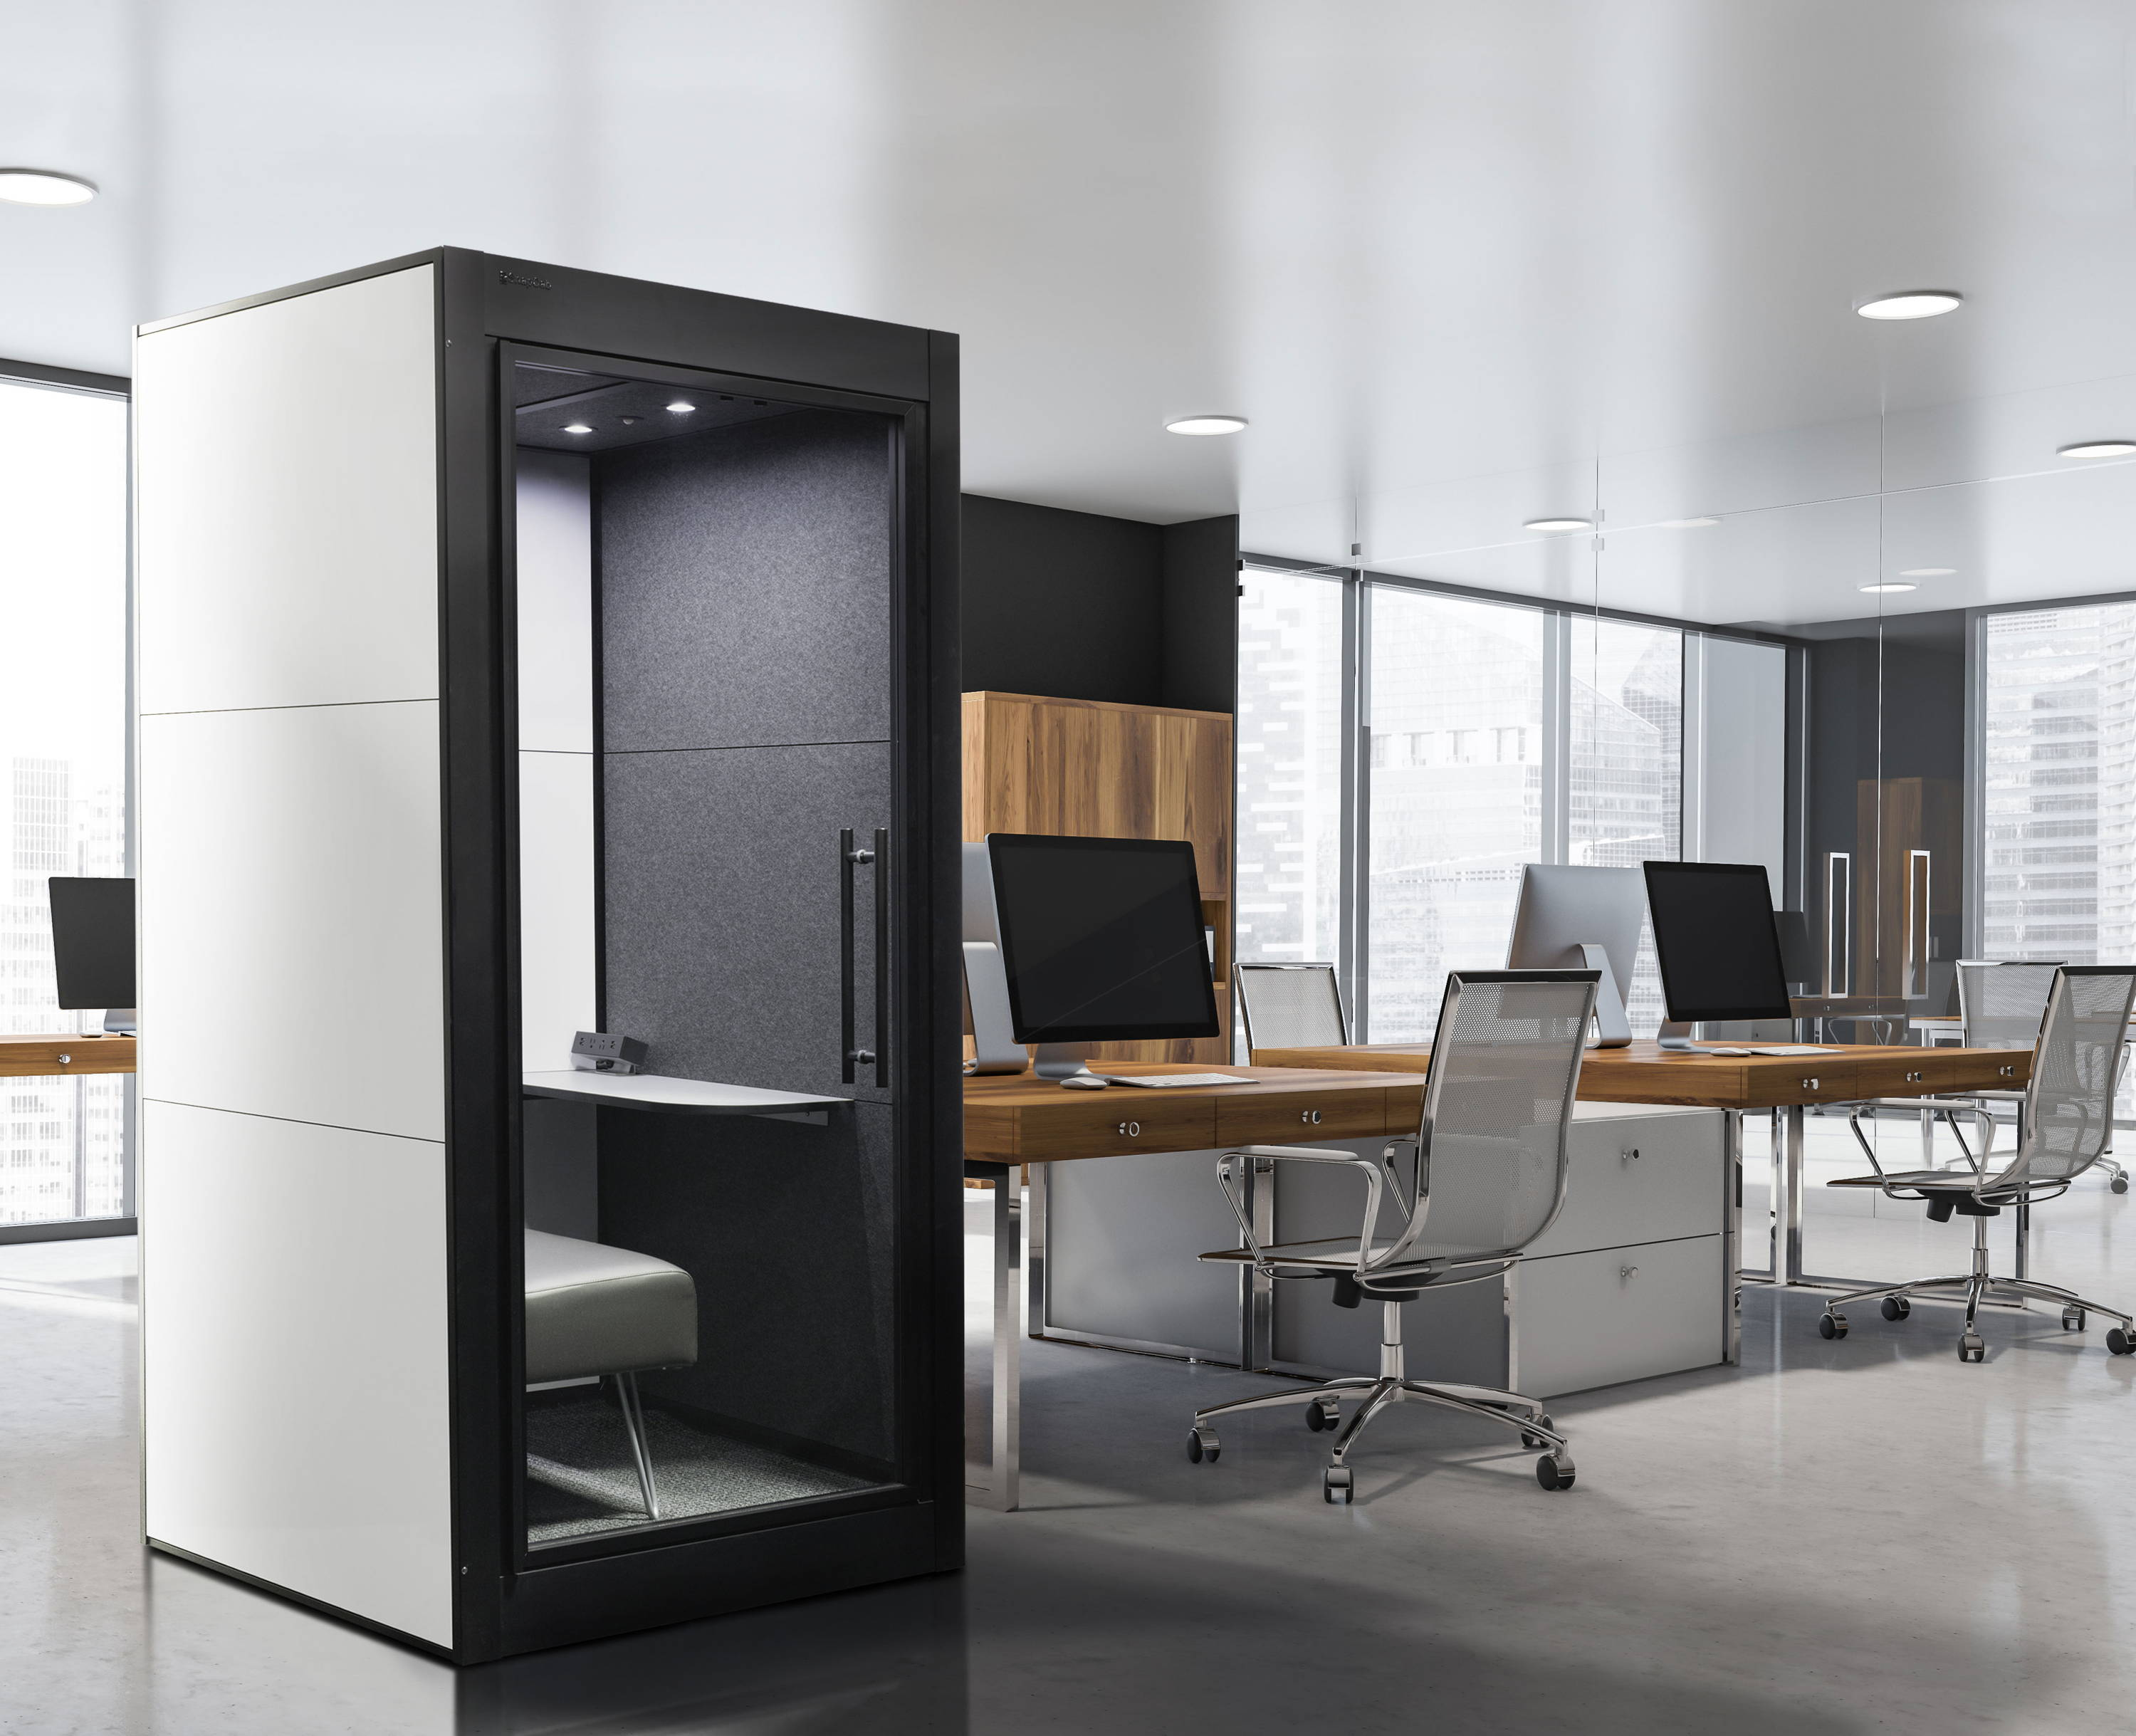 SnapCab Focus Office Pod in open office environment designed with black frame